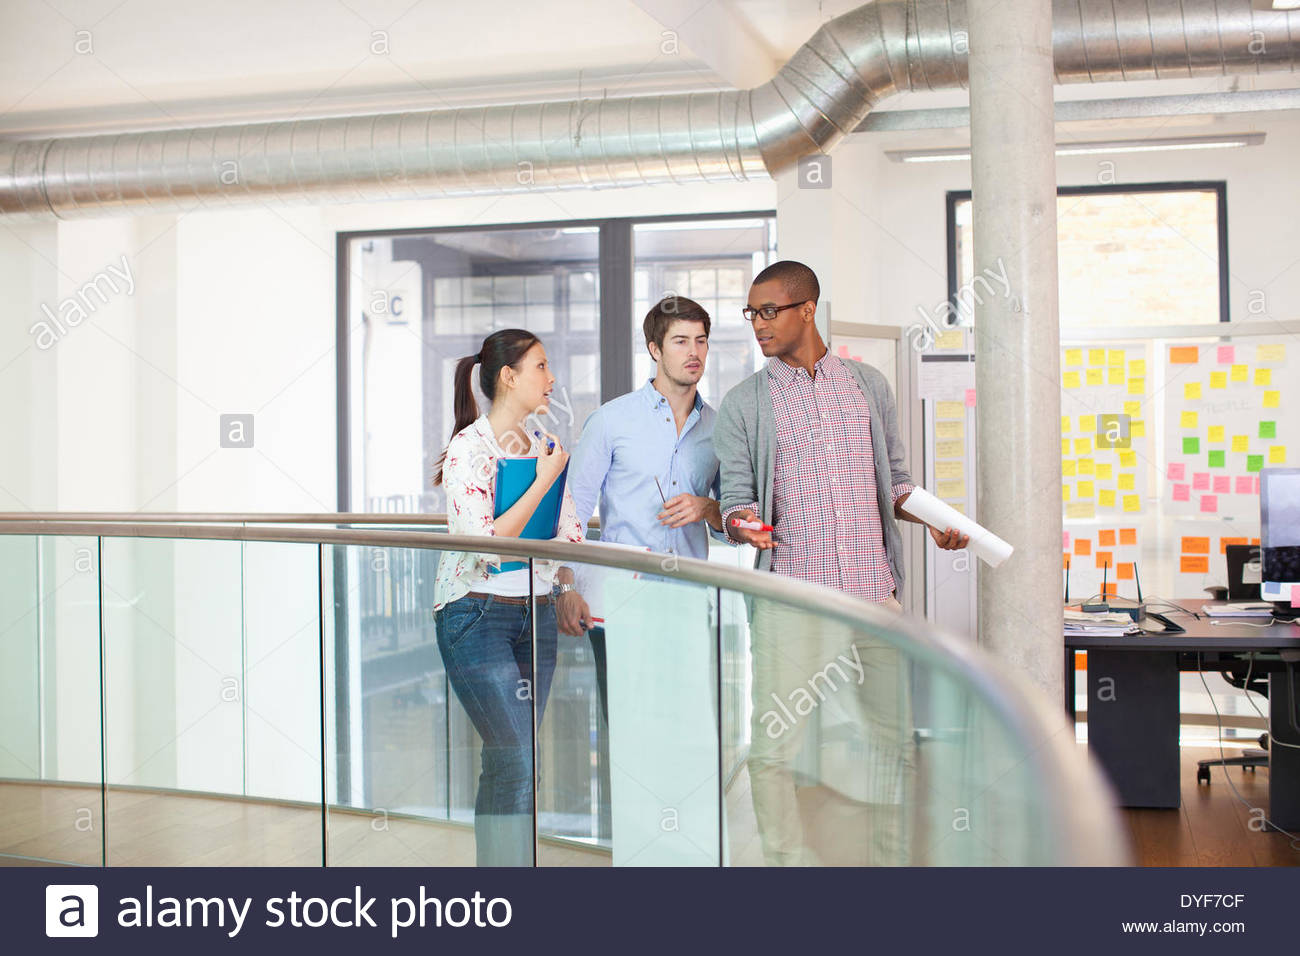 Three business people having discussion - Stock Image